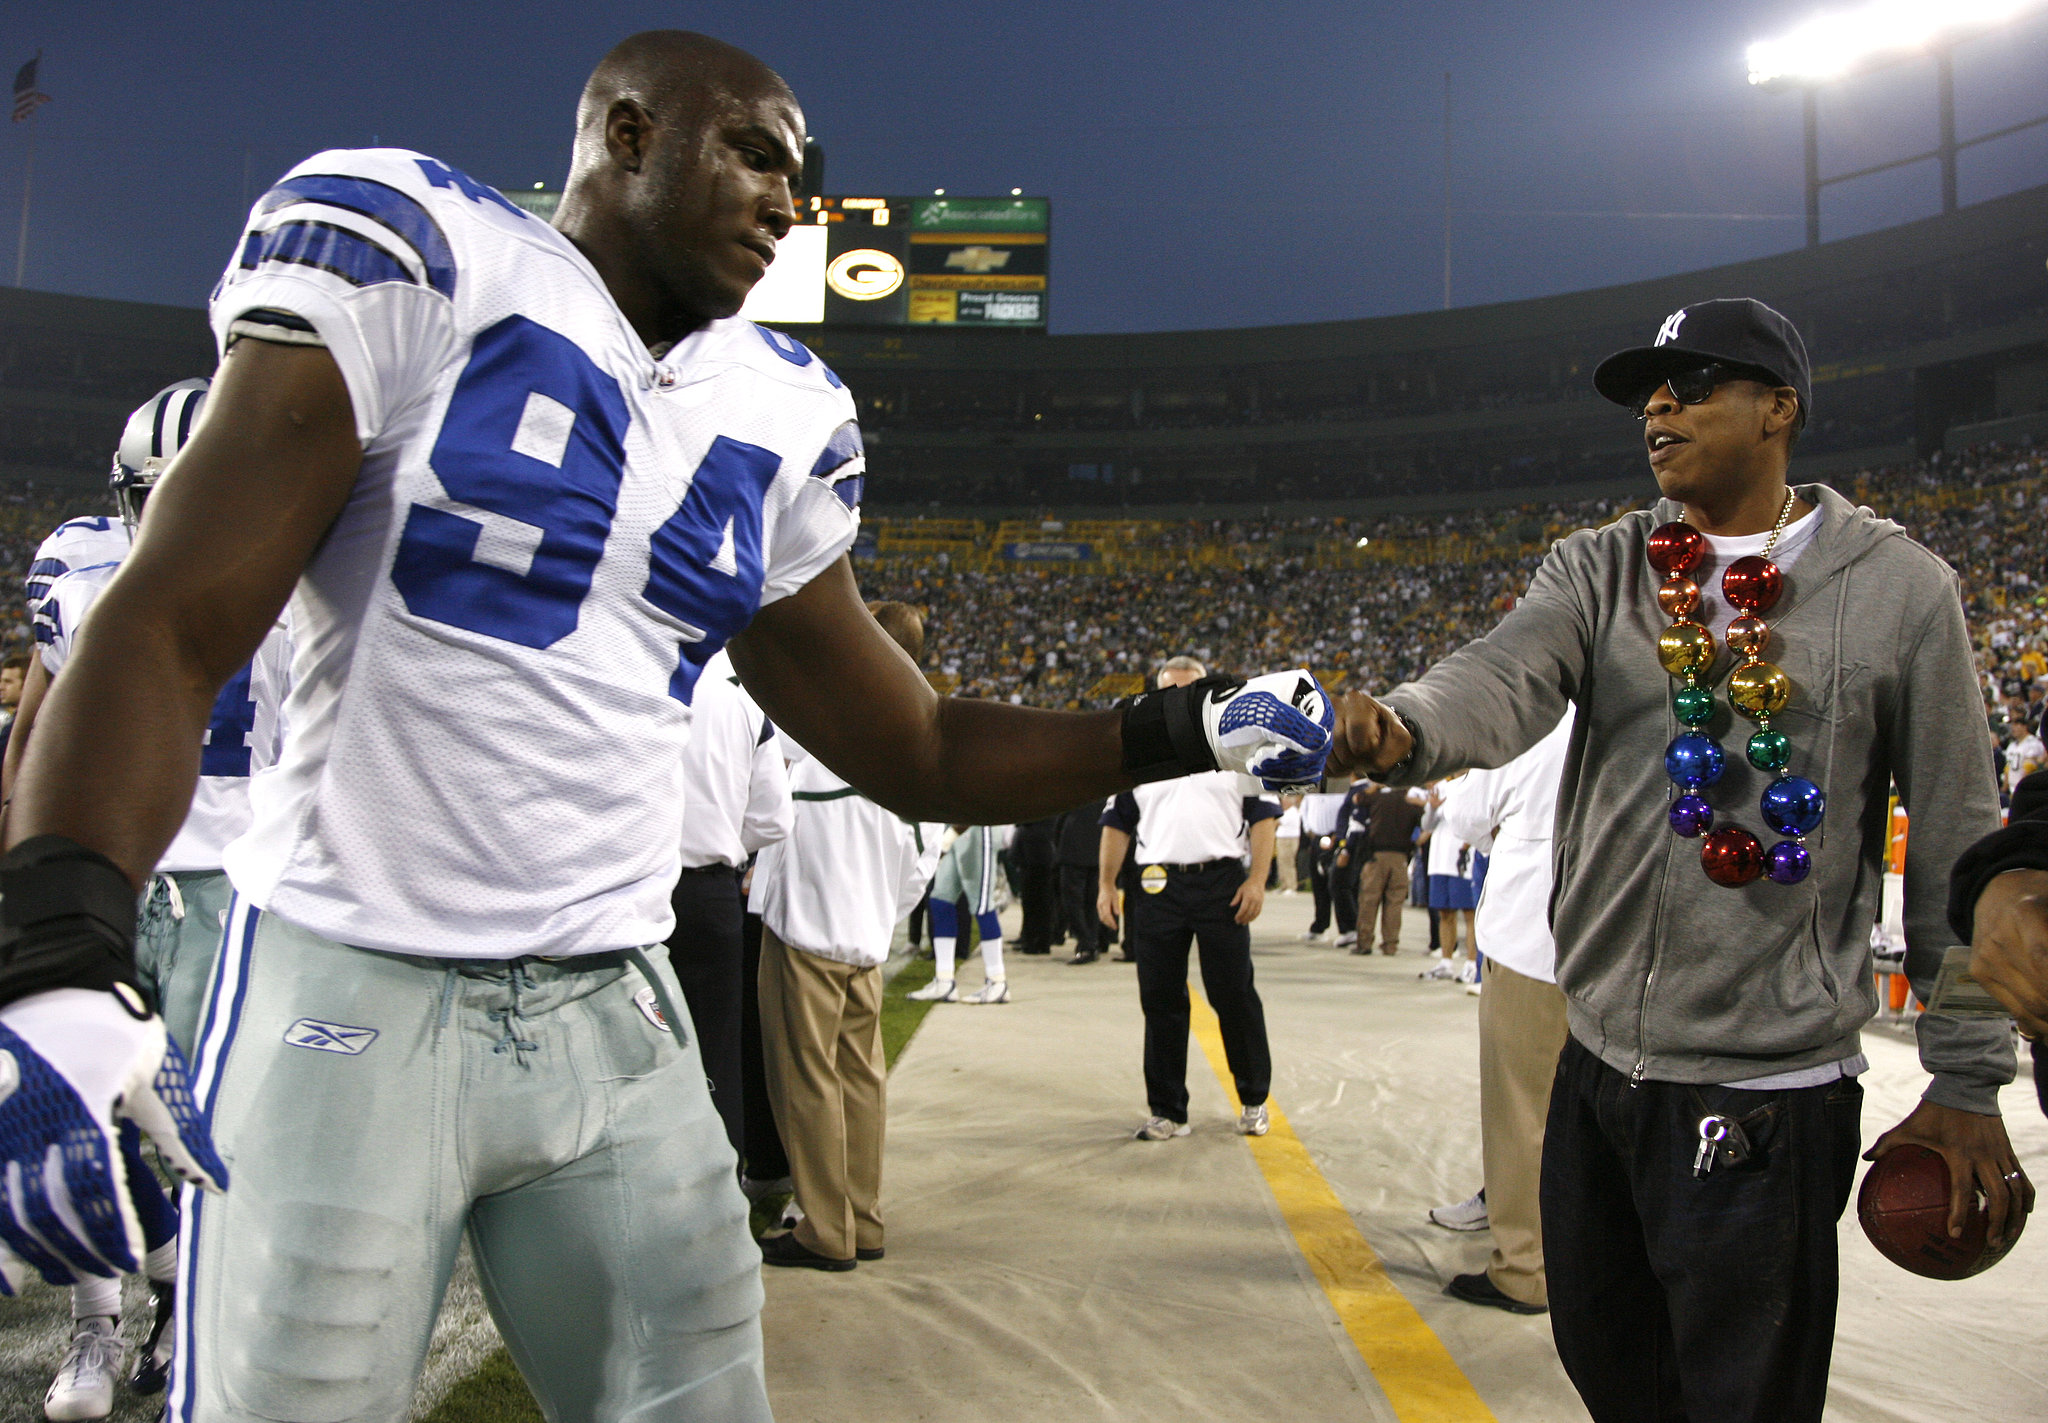 Jay Z hung out on the field before a Dallas Cowboys game in September 2008.